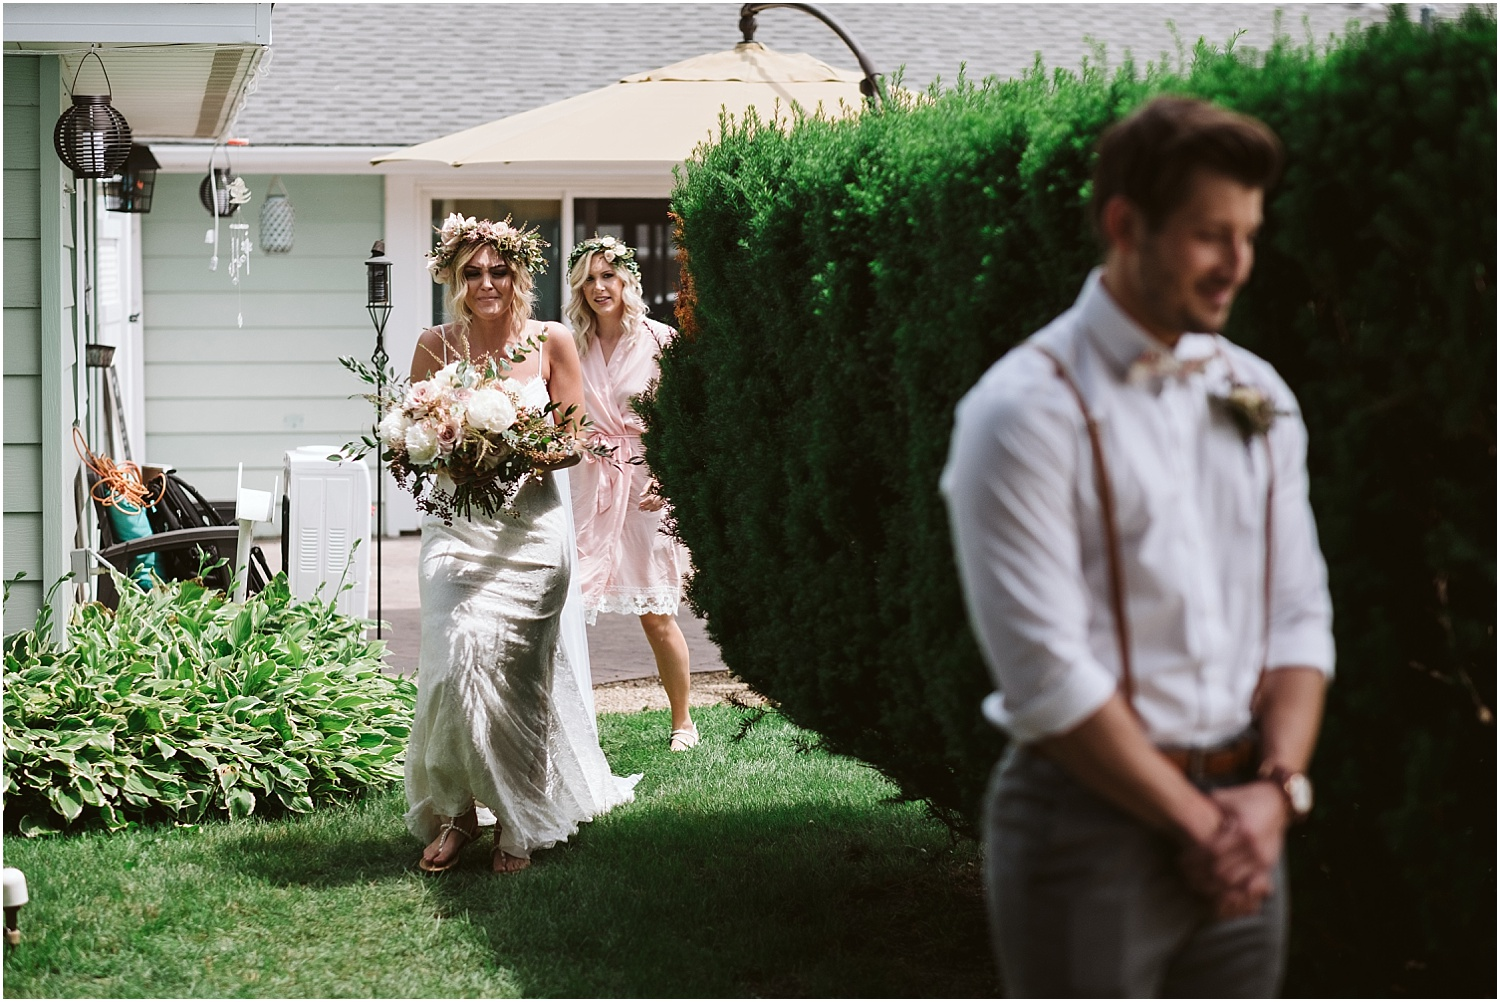 j-b-joyful-happy-smile-dancing-backyard-diy-boho-chic-wedding_0029.jpg